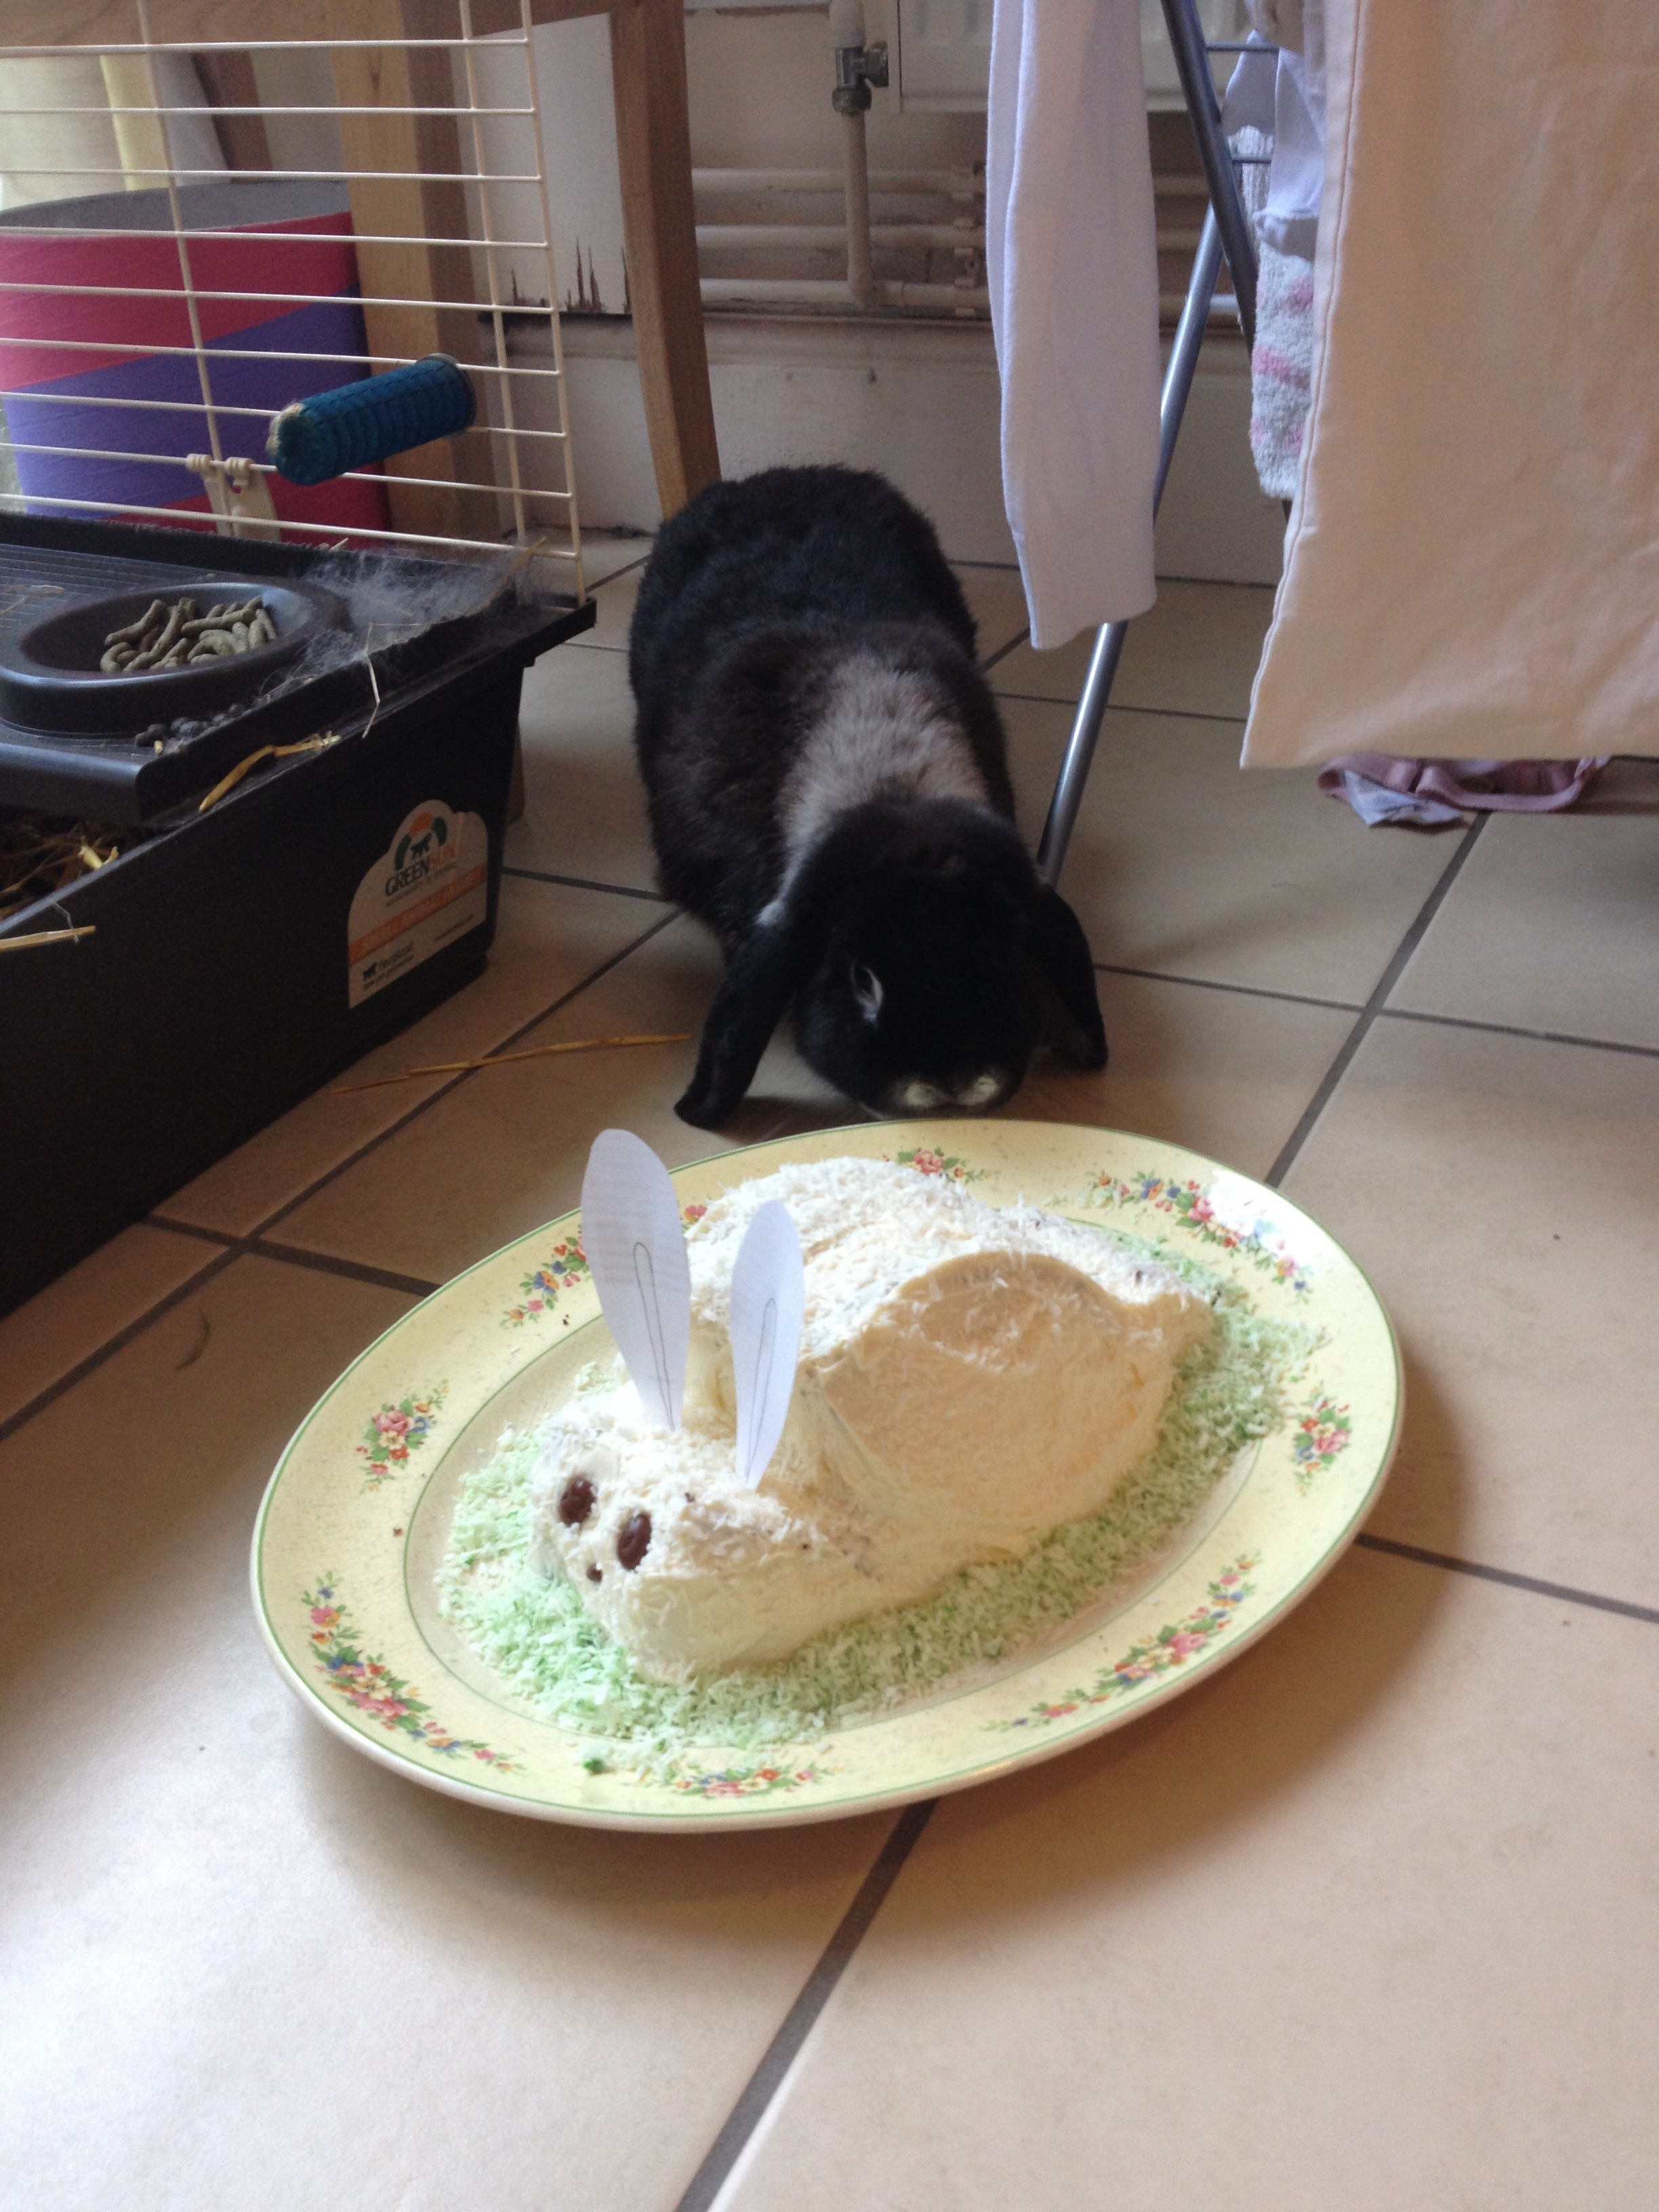 Bunny Is Puzzled by This New Bunny-Shaped, Sweet-Smelling Thing